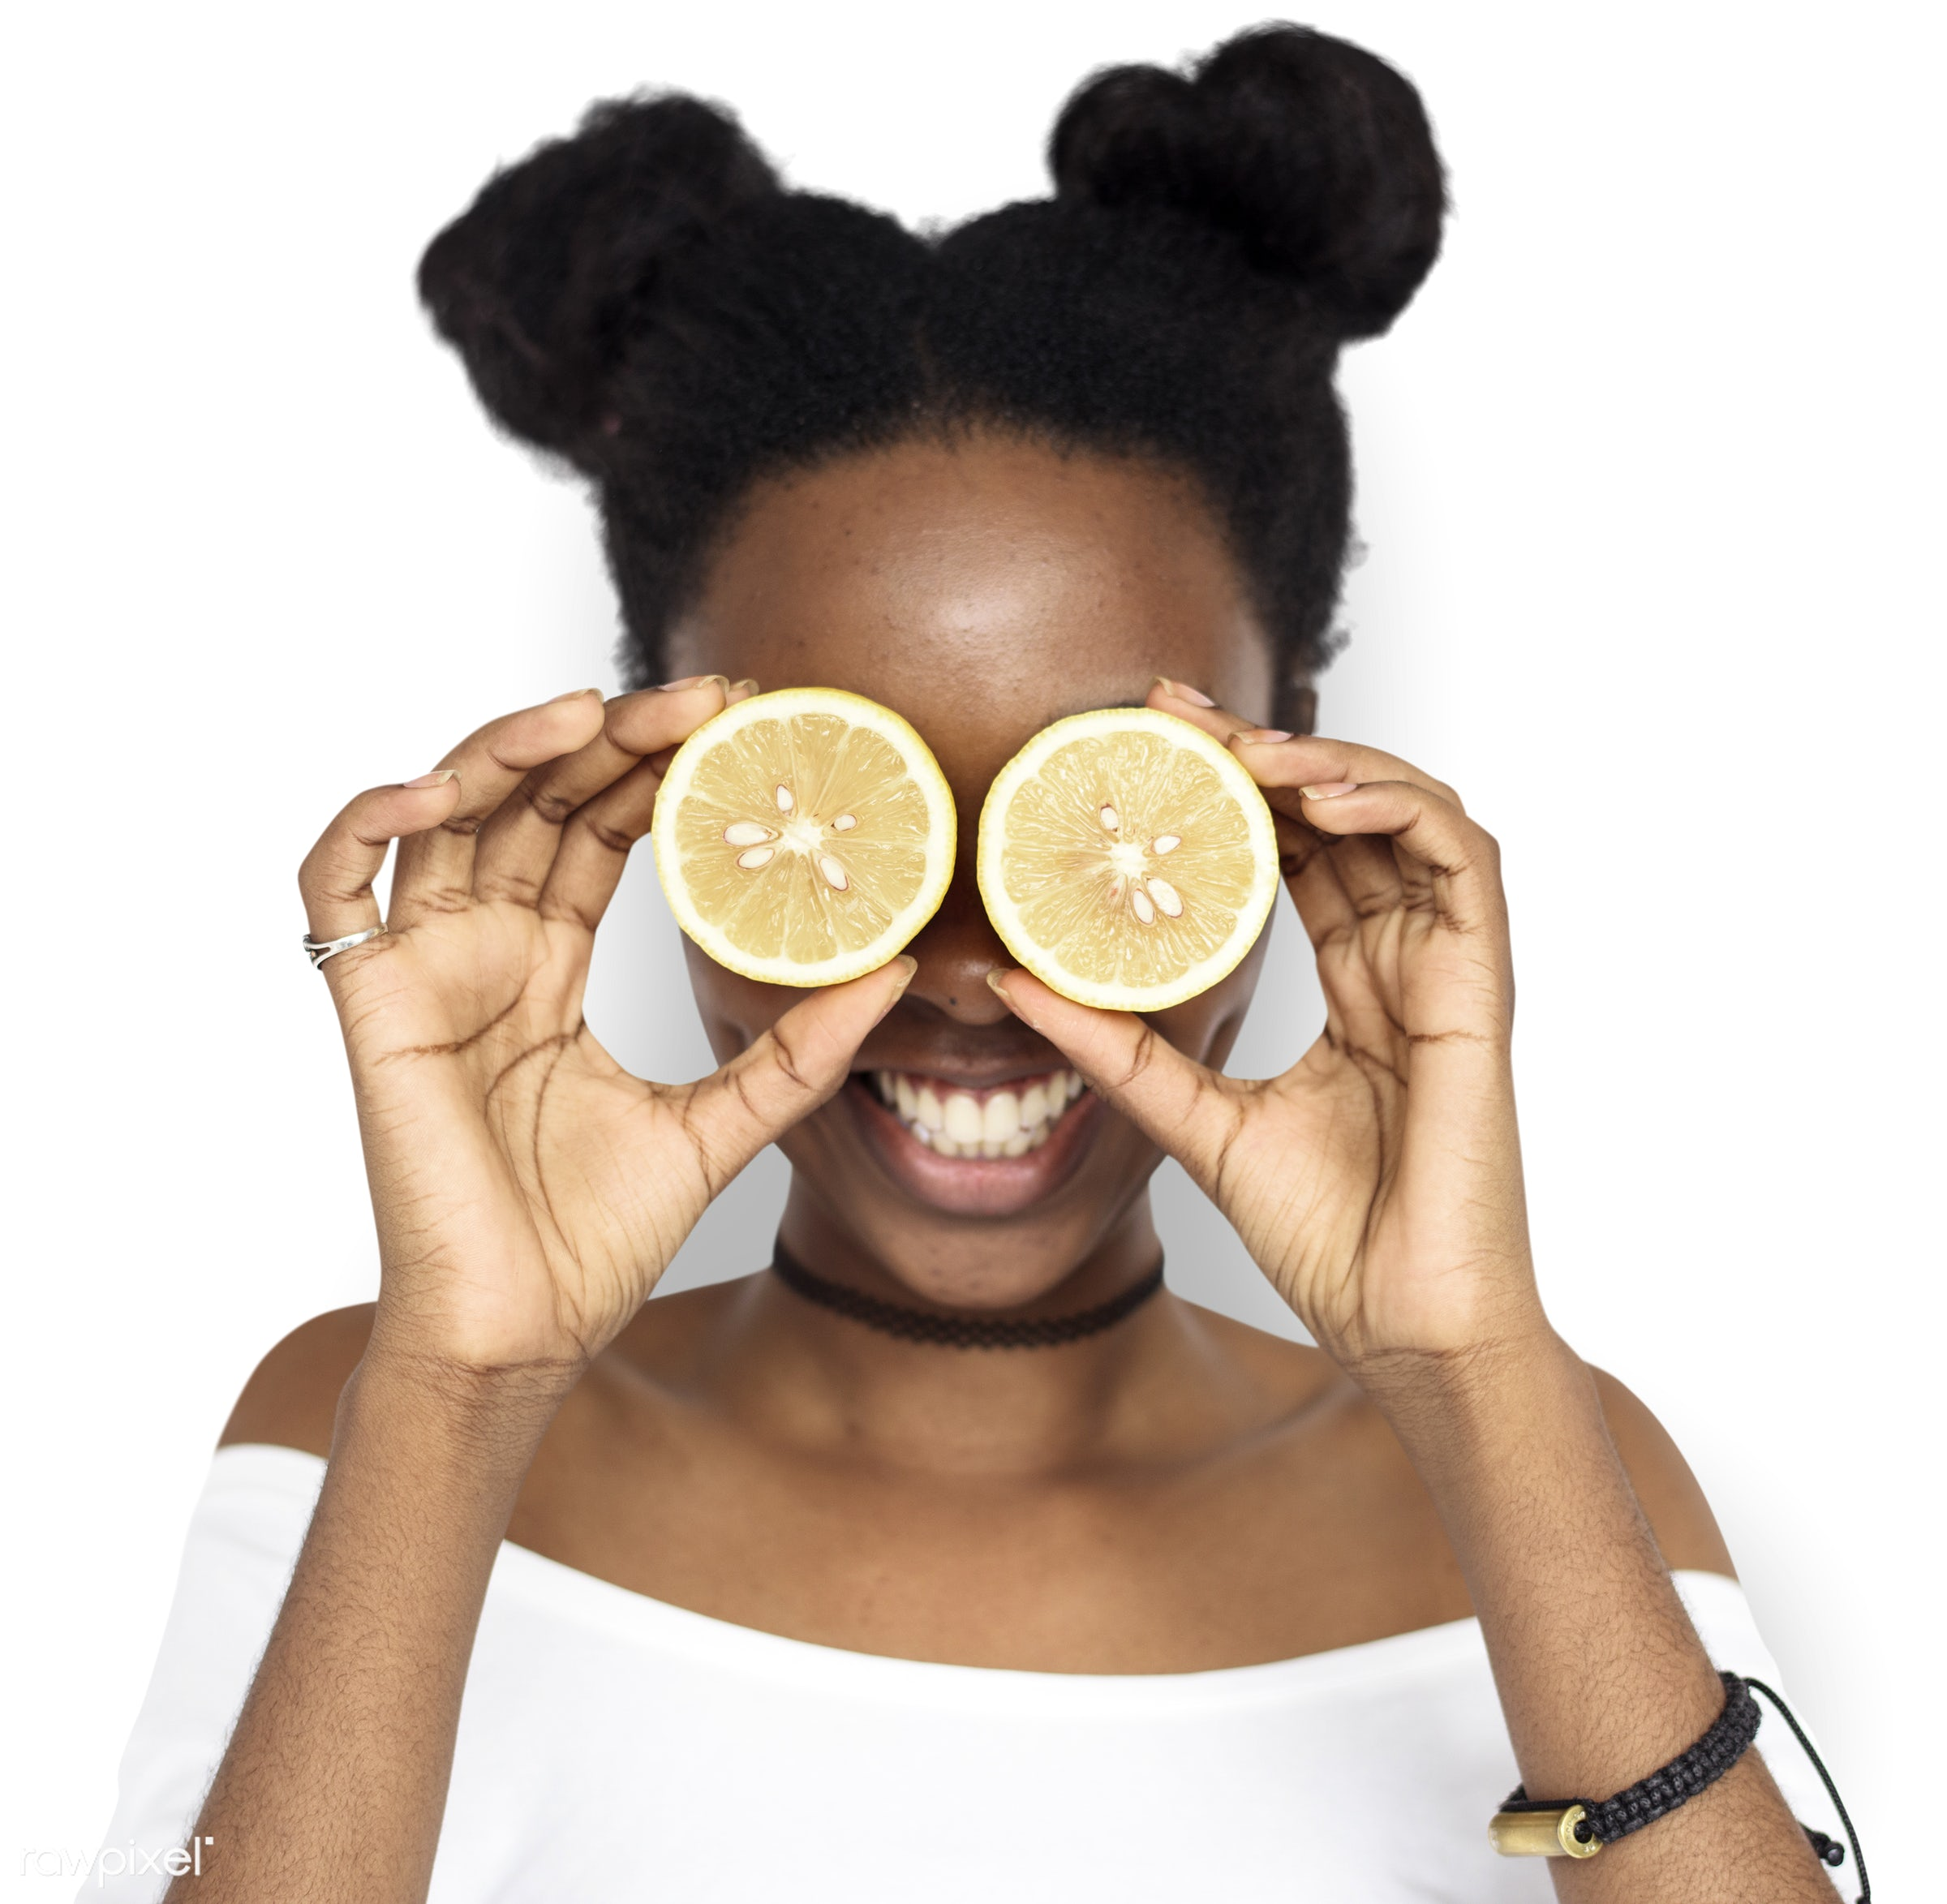 studio, expression, person, people, eyes, cover, woman, cheerful, smiling, black, isolated, fruit, african descent, white,...